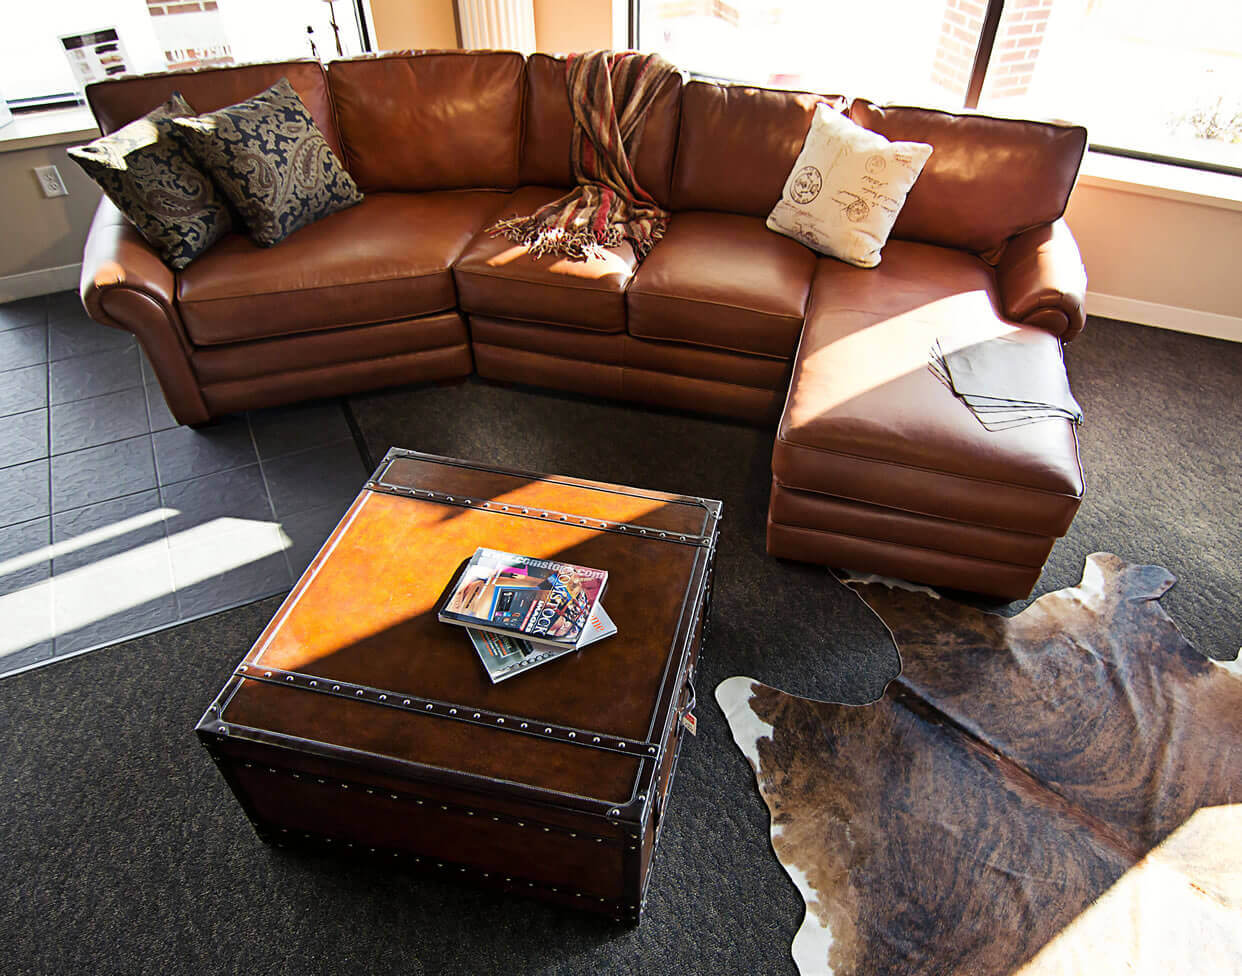 Stupendous Leather Sectional With Cuddler Caraccident5 Cool Chair Designs And Ideas Caraccident5Info